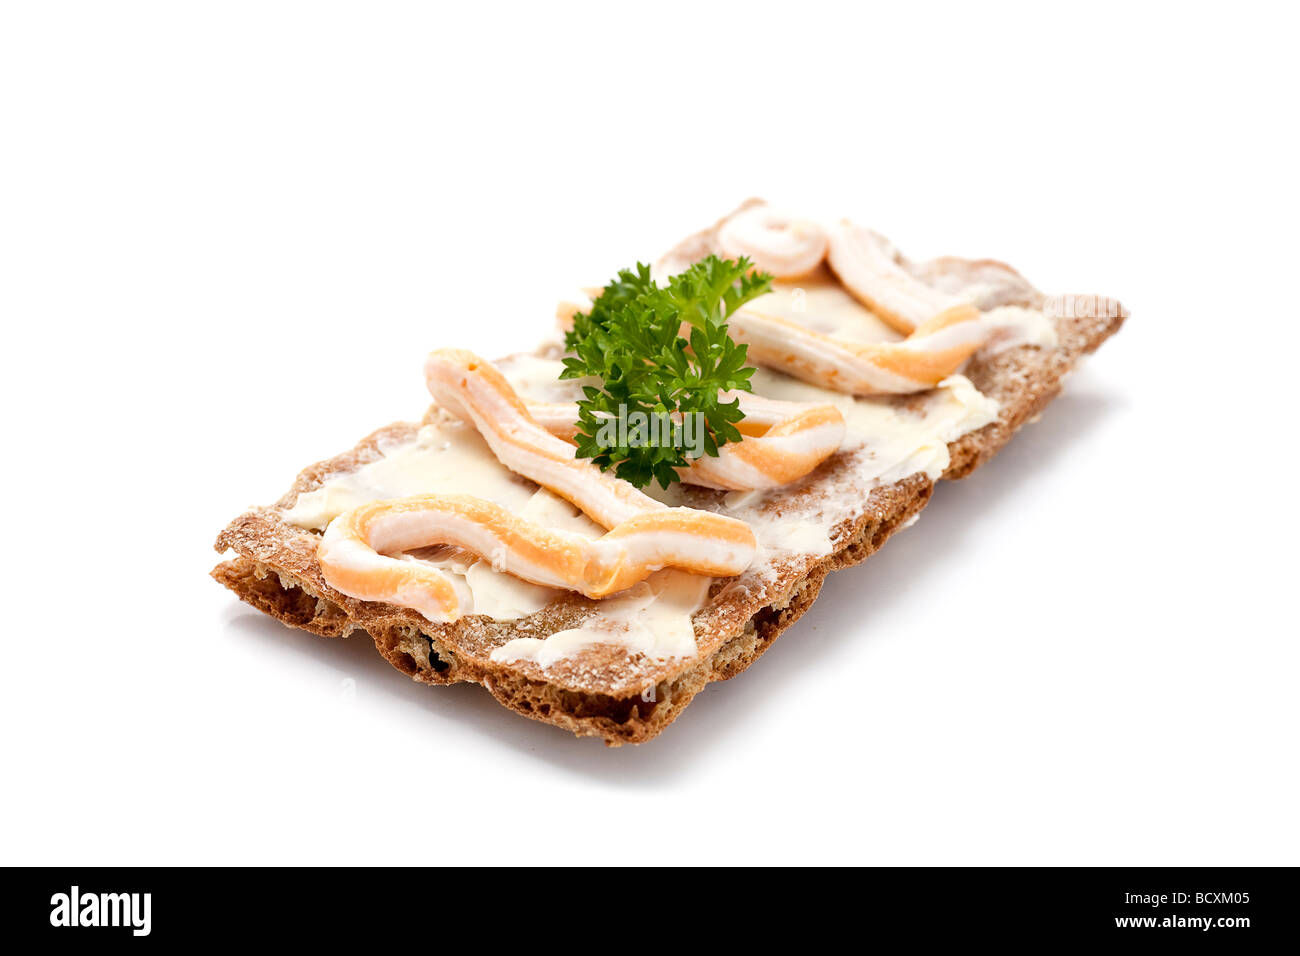 Swedish rye bread with butter caviar and parsley Shallow d o f - Stock Image